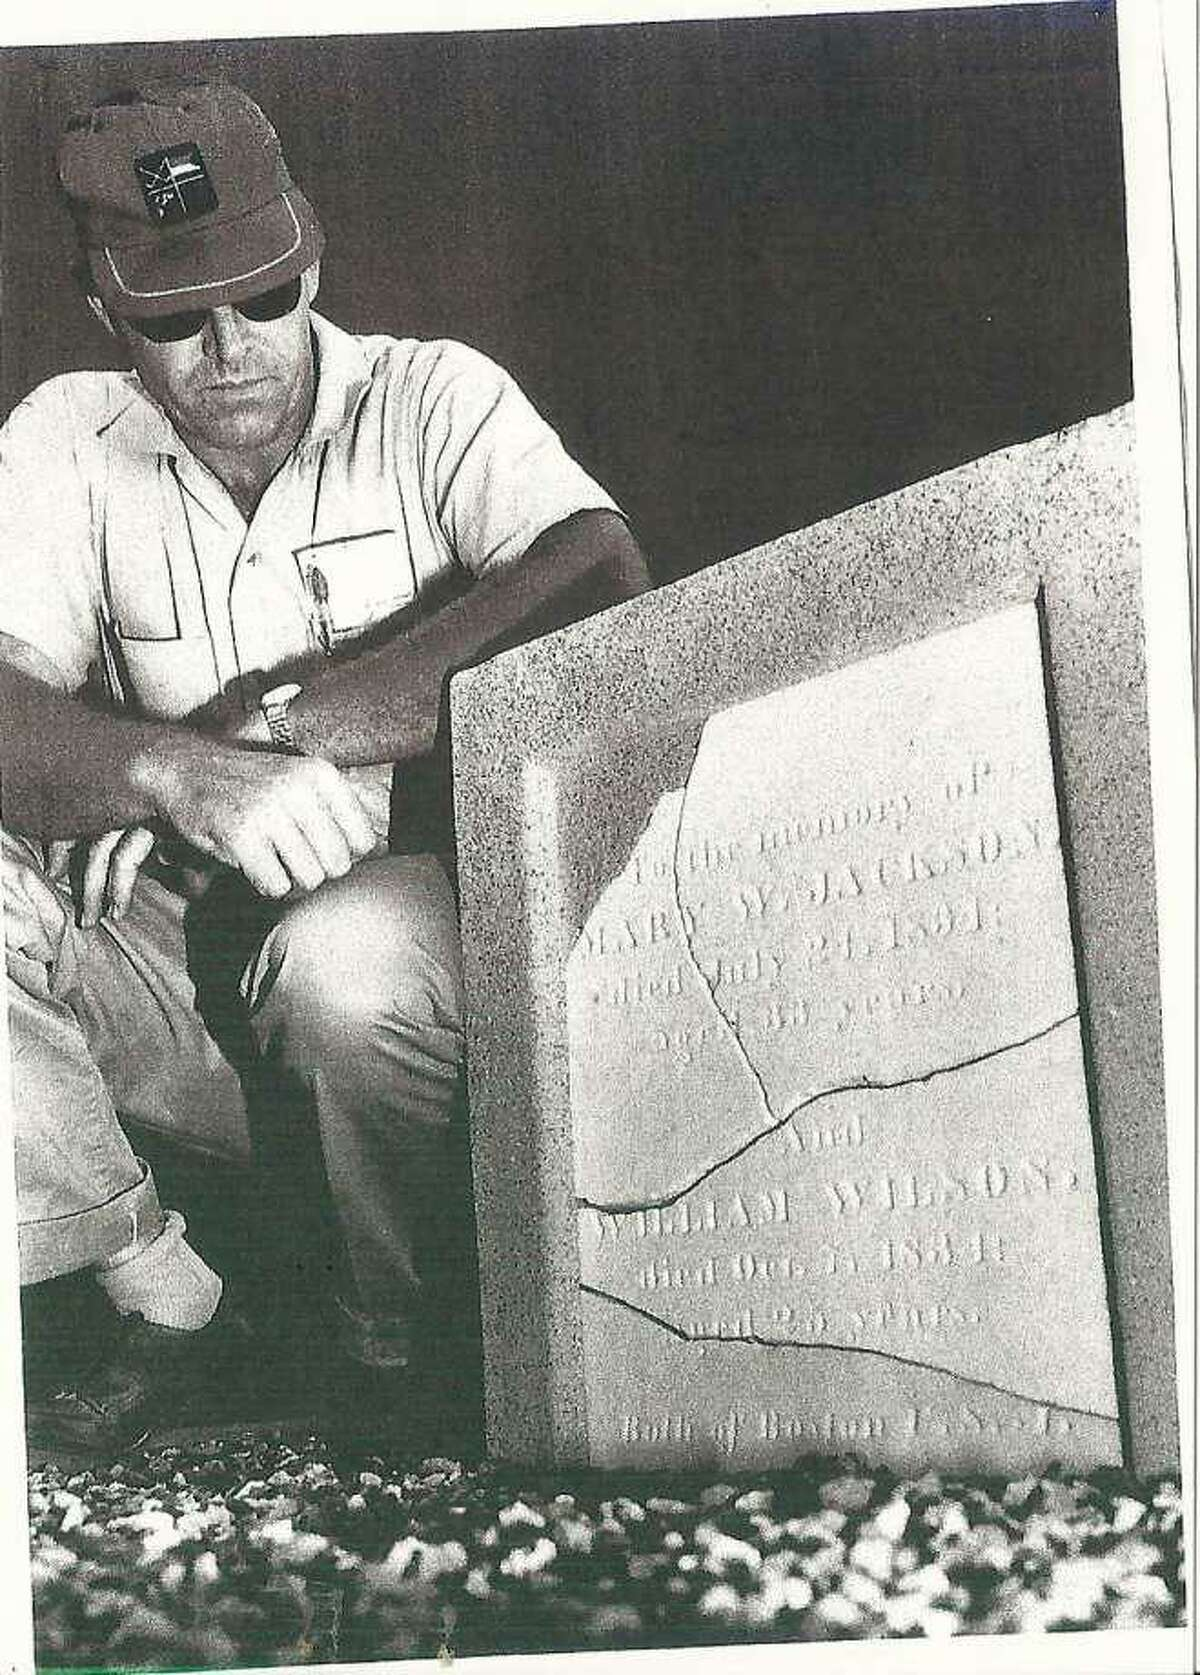 A Shell worker views a tombstone of two early settlers that was found on company property. It is now in Dow Park in Deer Park, where an Oct. 20 ceremony will dedicate a Texas Historical Marker for the headstone.